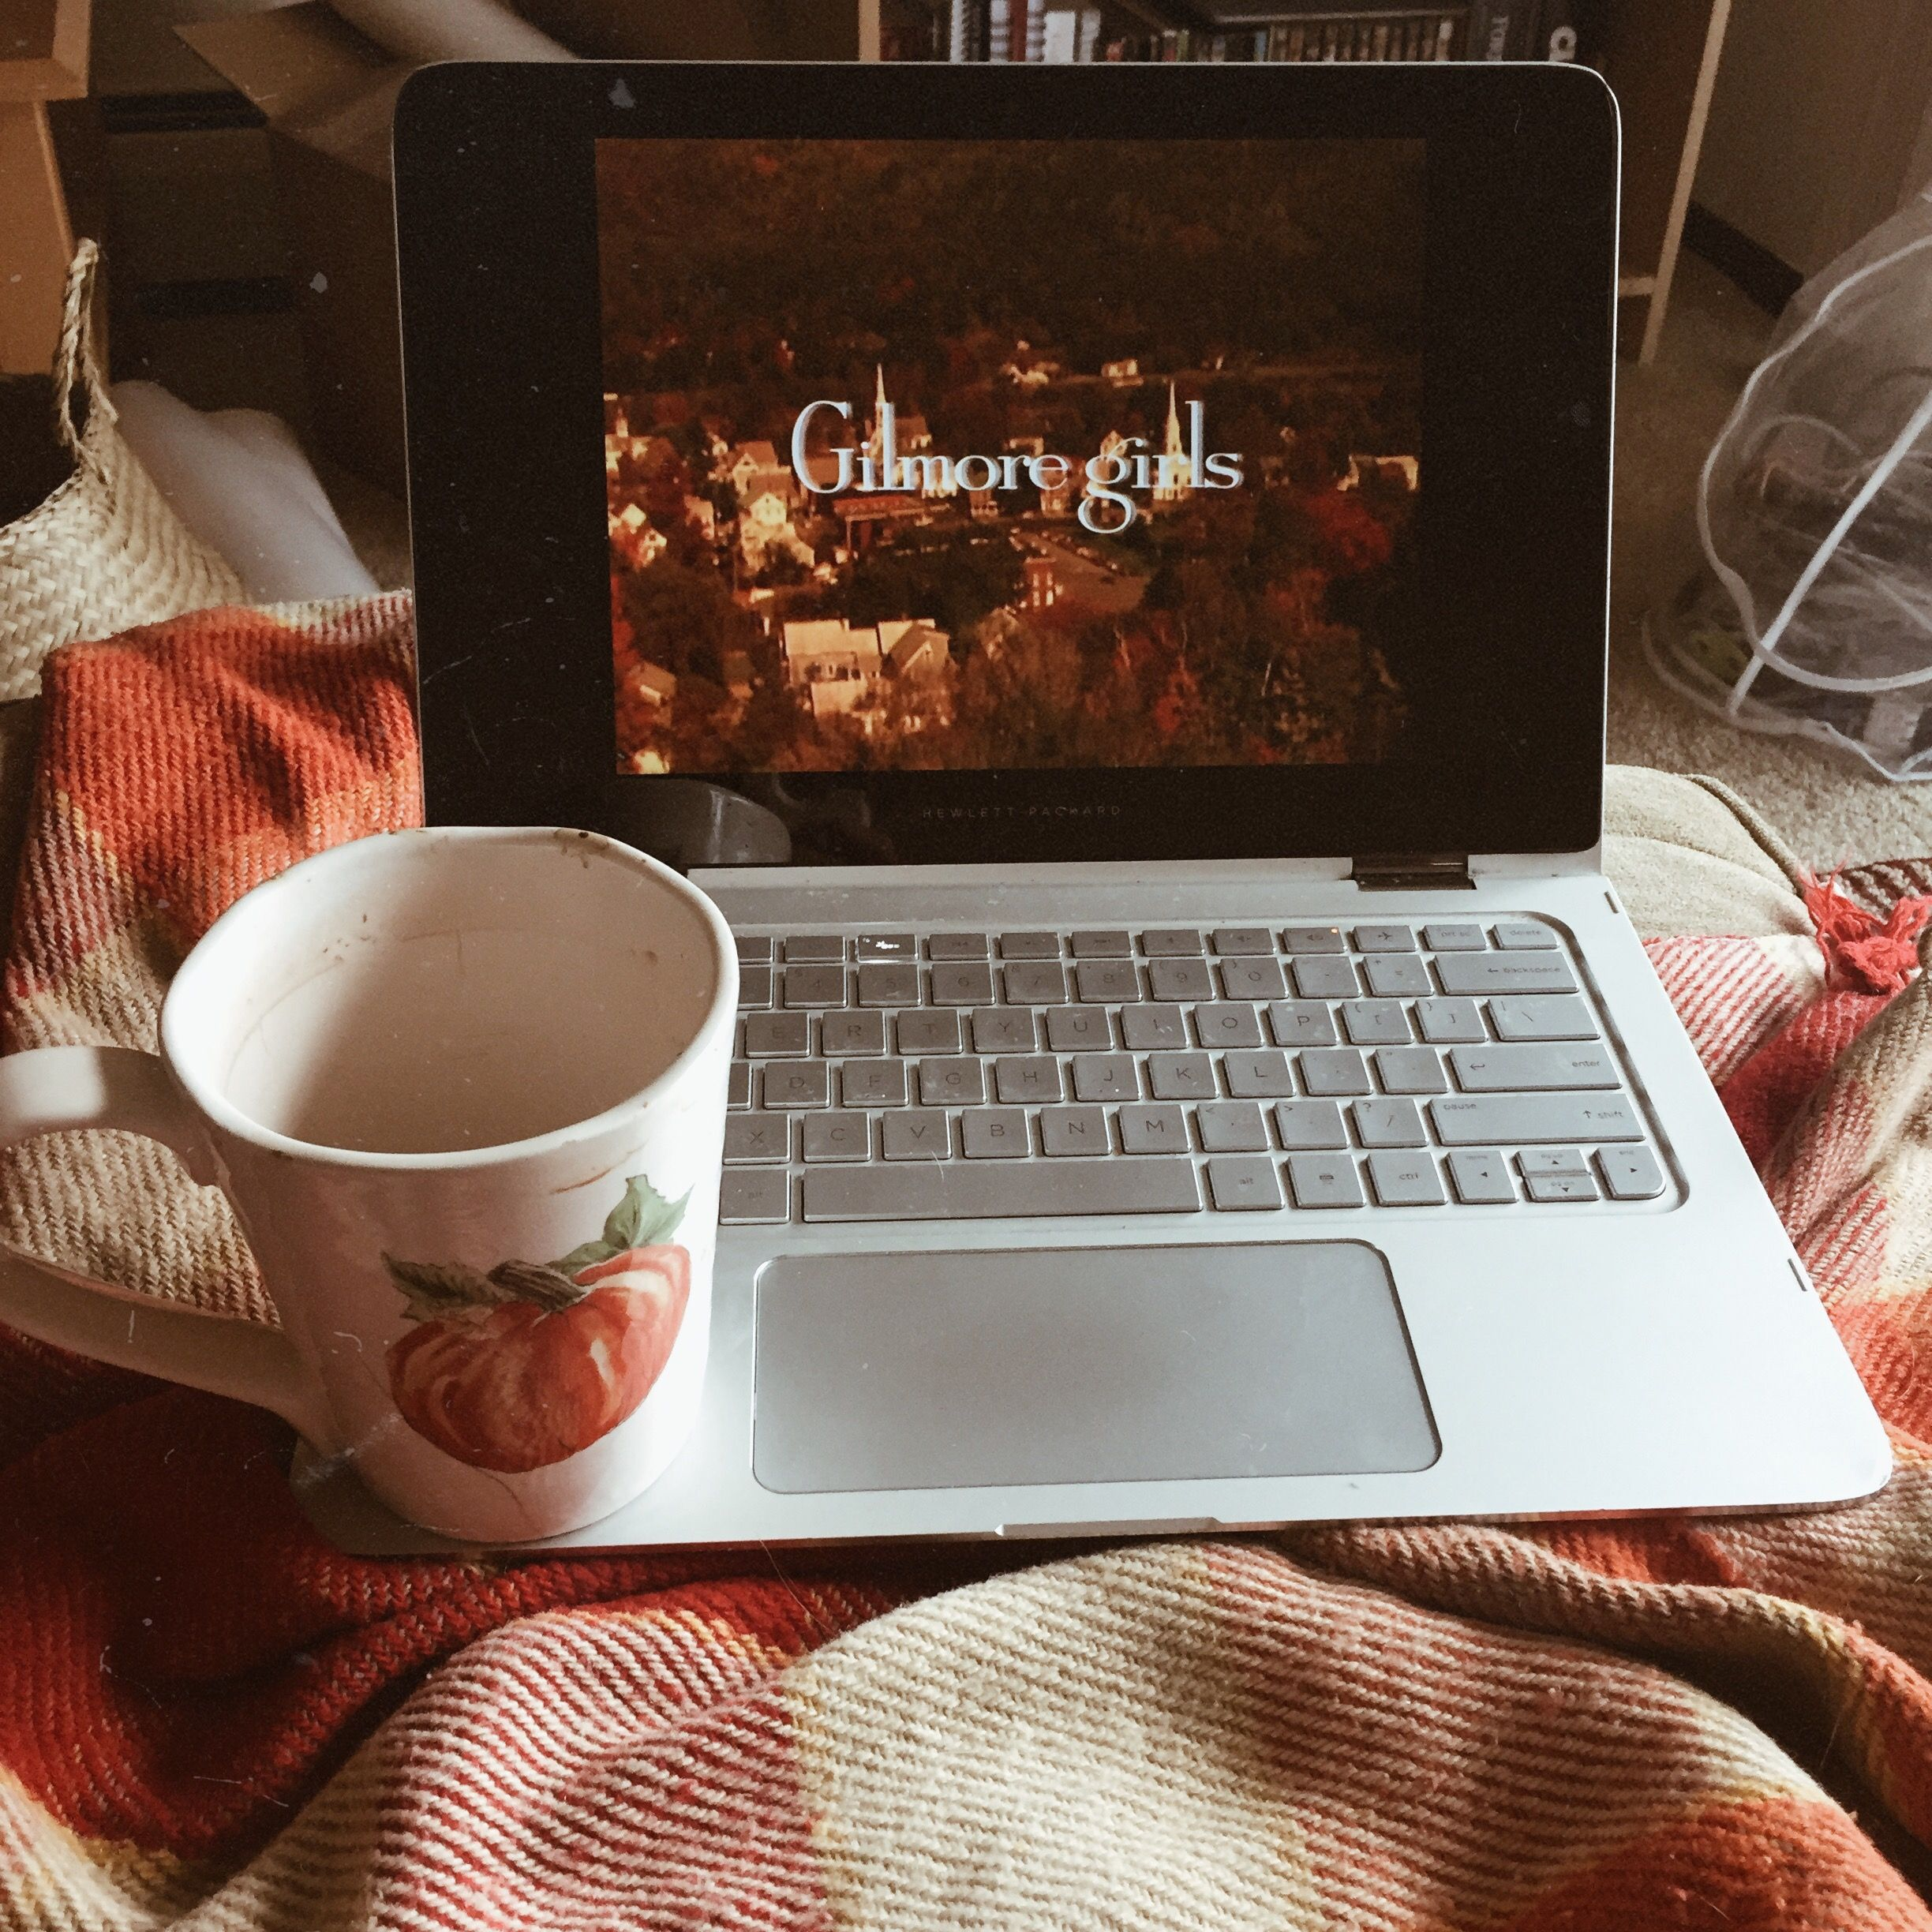 Cozyfall Home: #fall #morning #cozy # Cozyfall # Home #snuggles #autumn